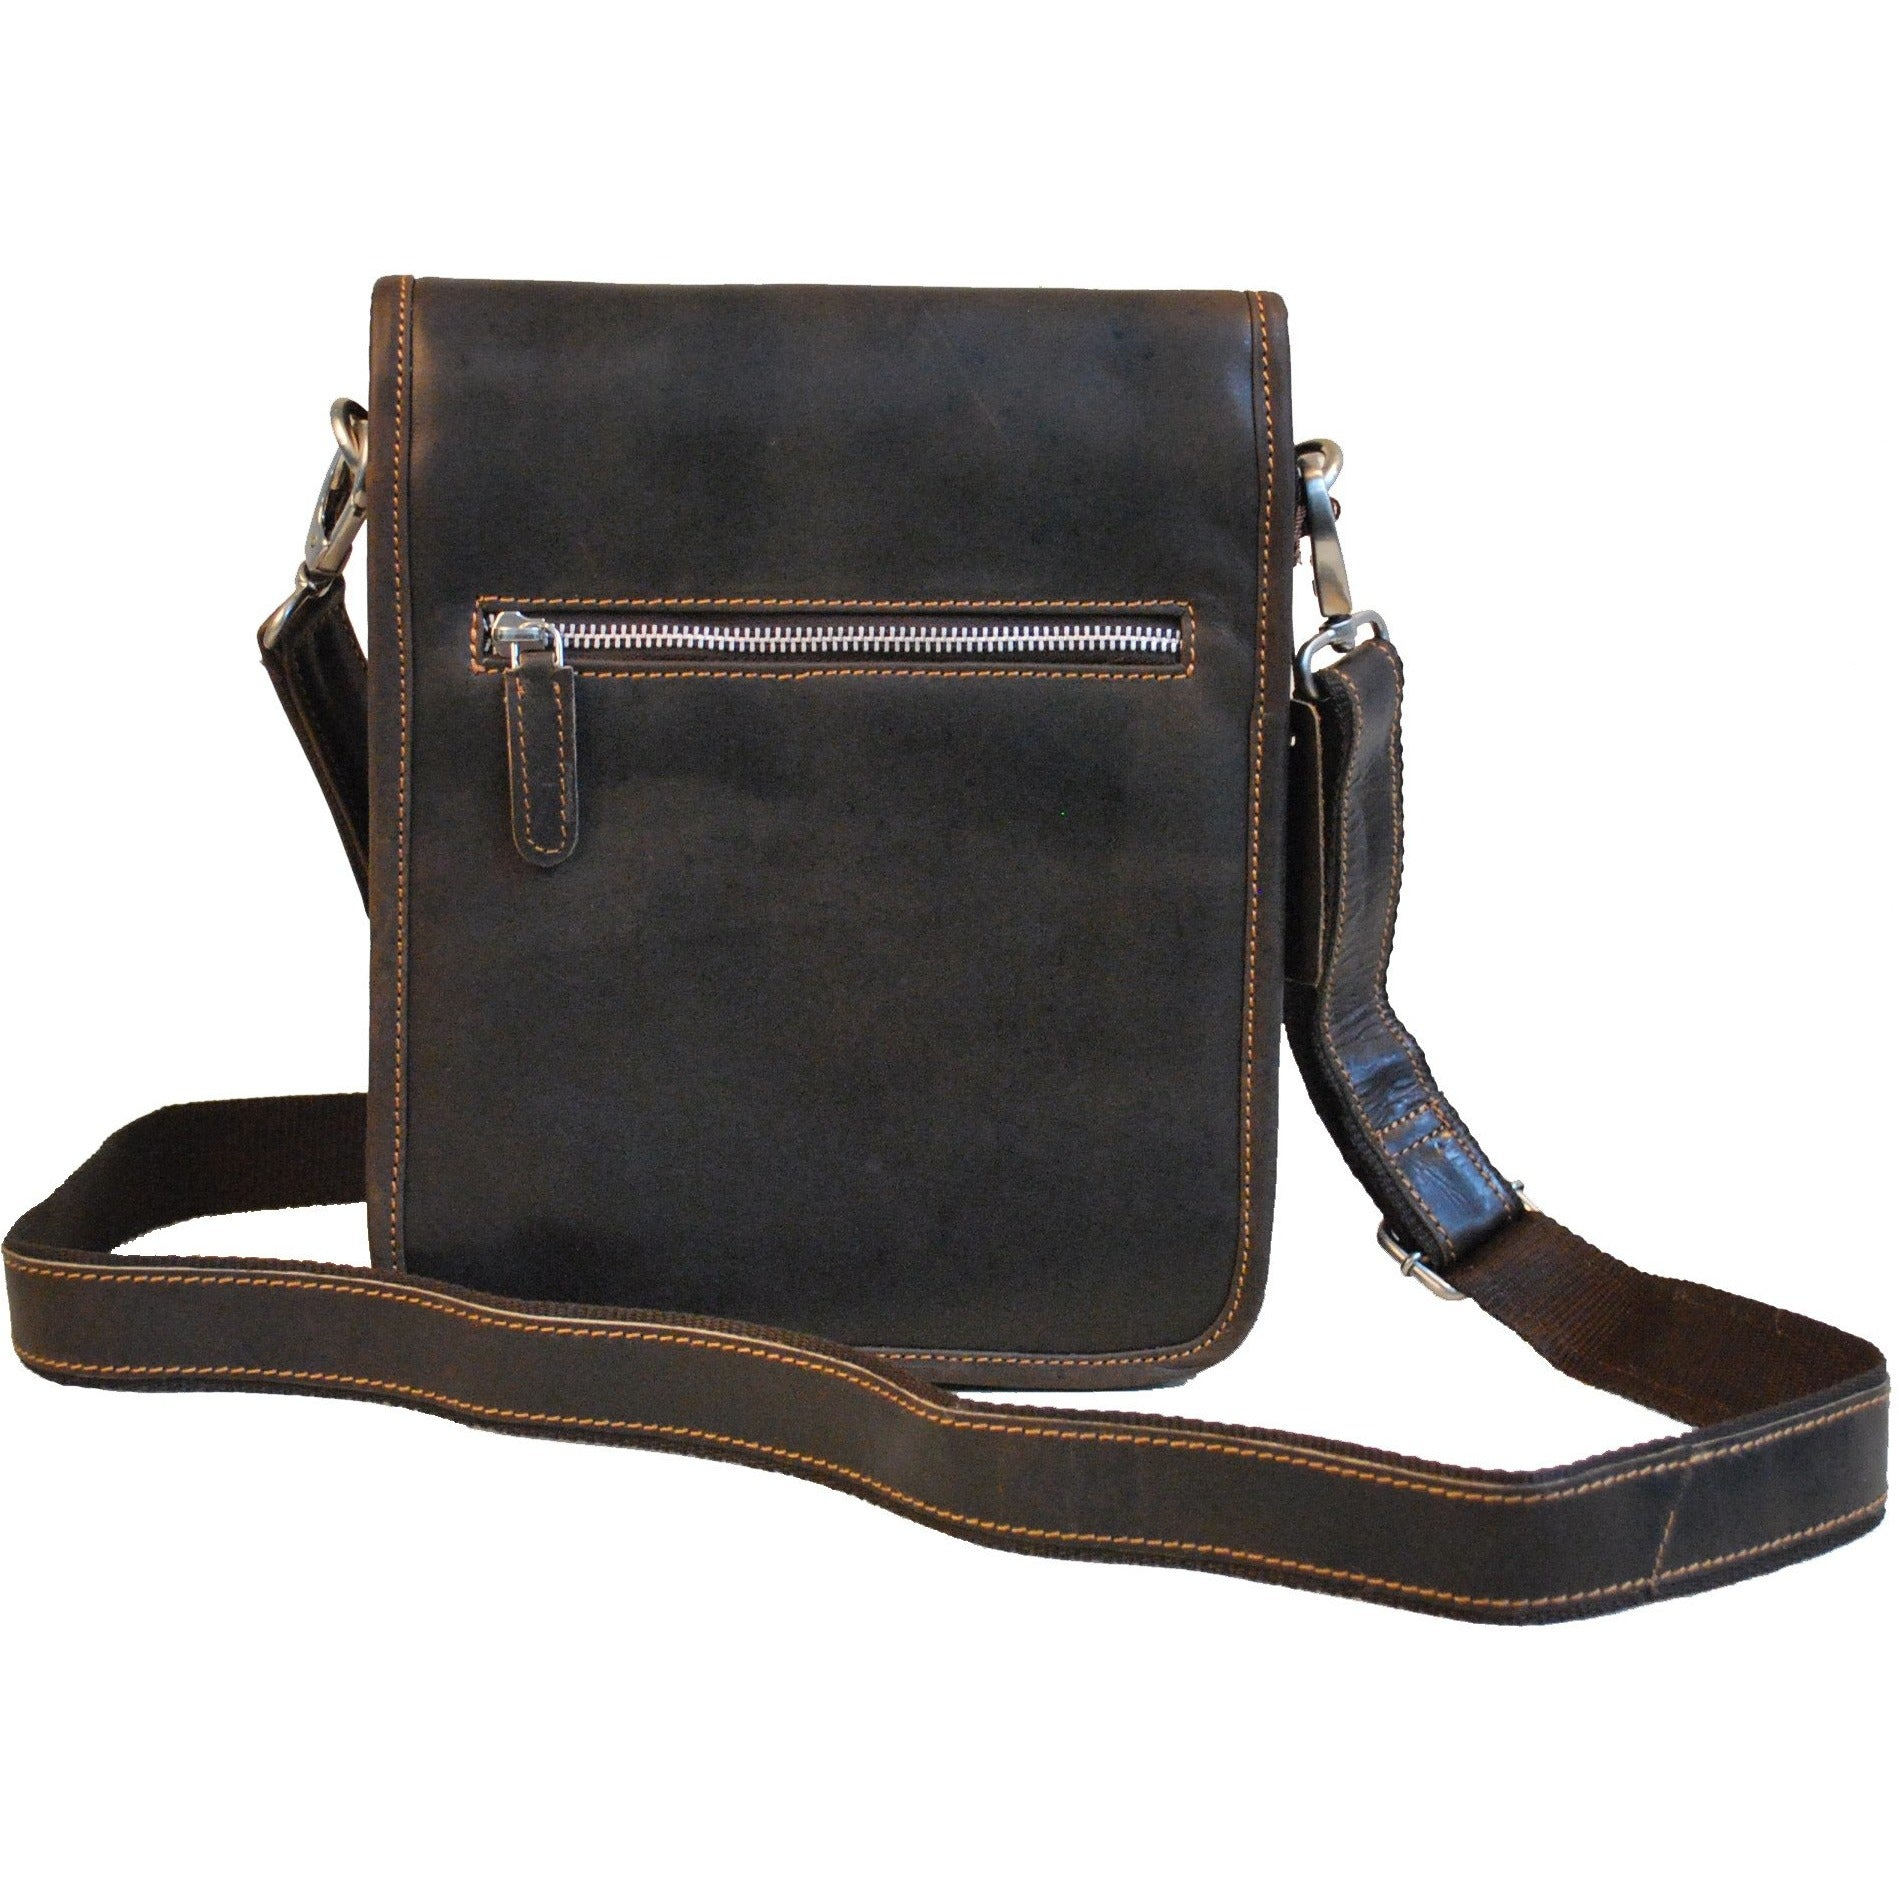 Hanne Everyday Satchel  - brown - unisex - Greenwood Australia - Handcrafted Premium Leather Goods